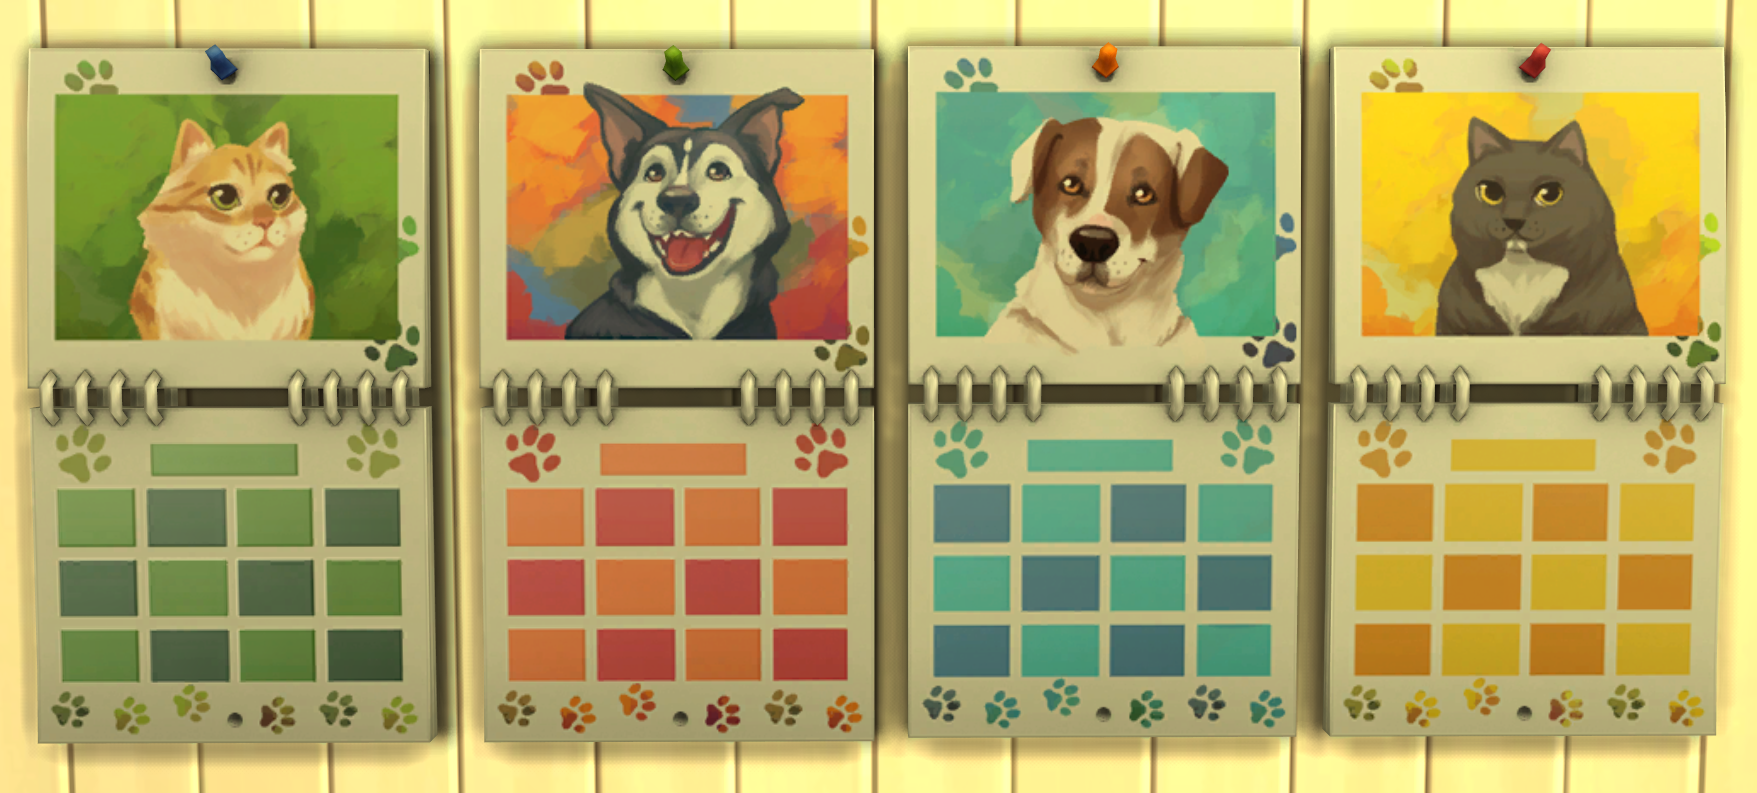 Sims  Will Seasons Come After Cats And Dogs